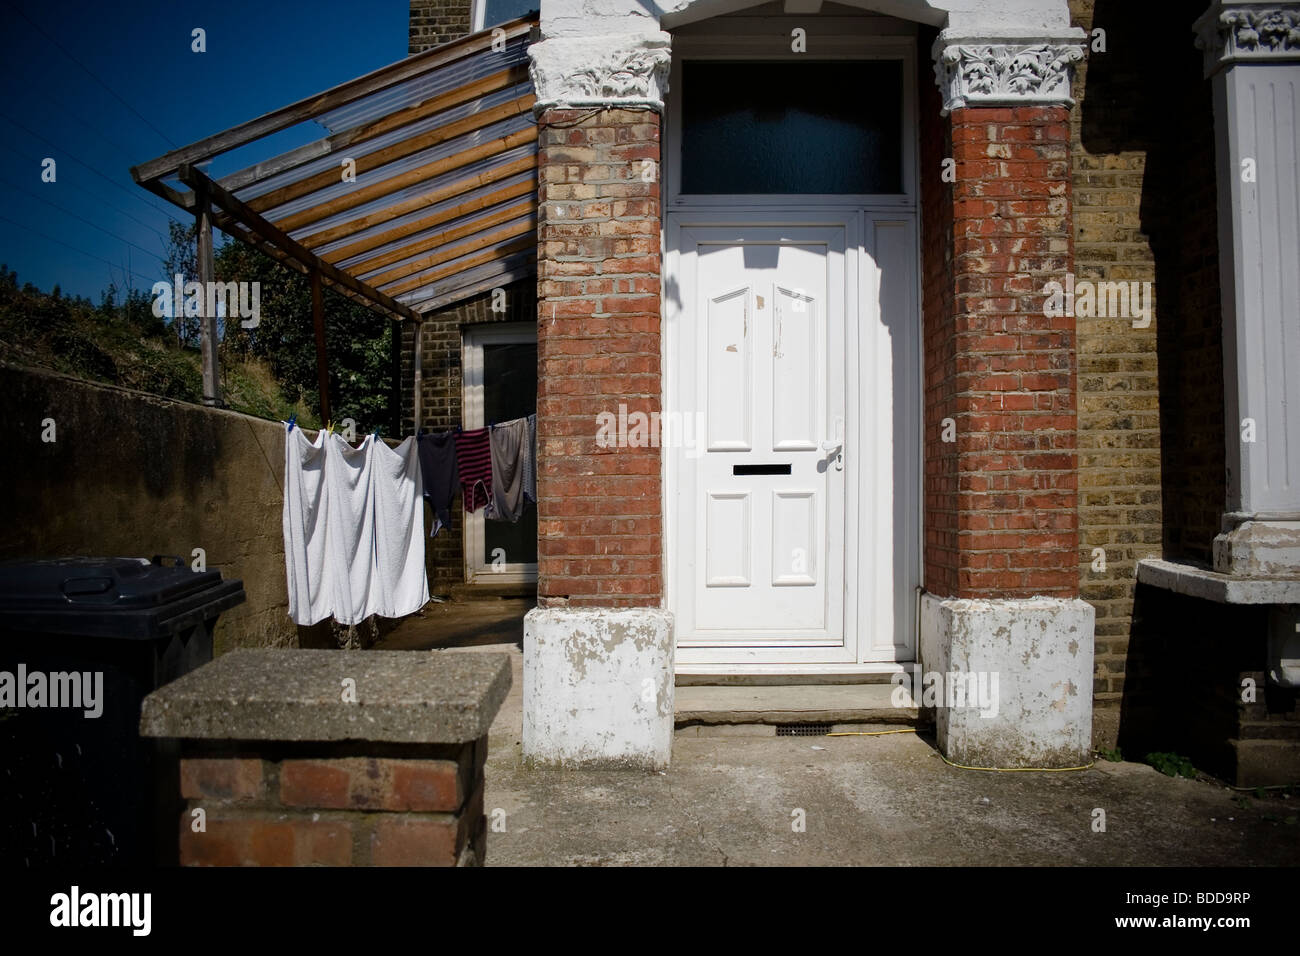 tipical periphery london's house in seven sister - Stock Image